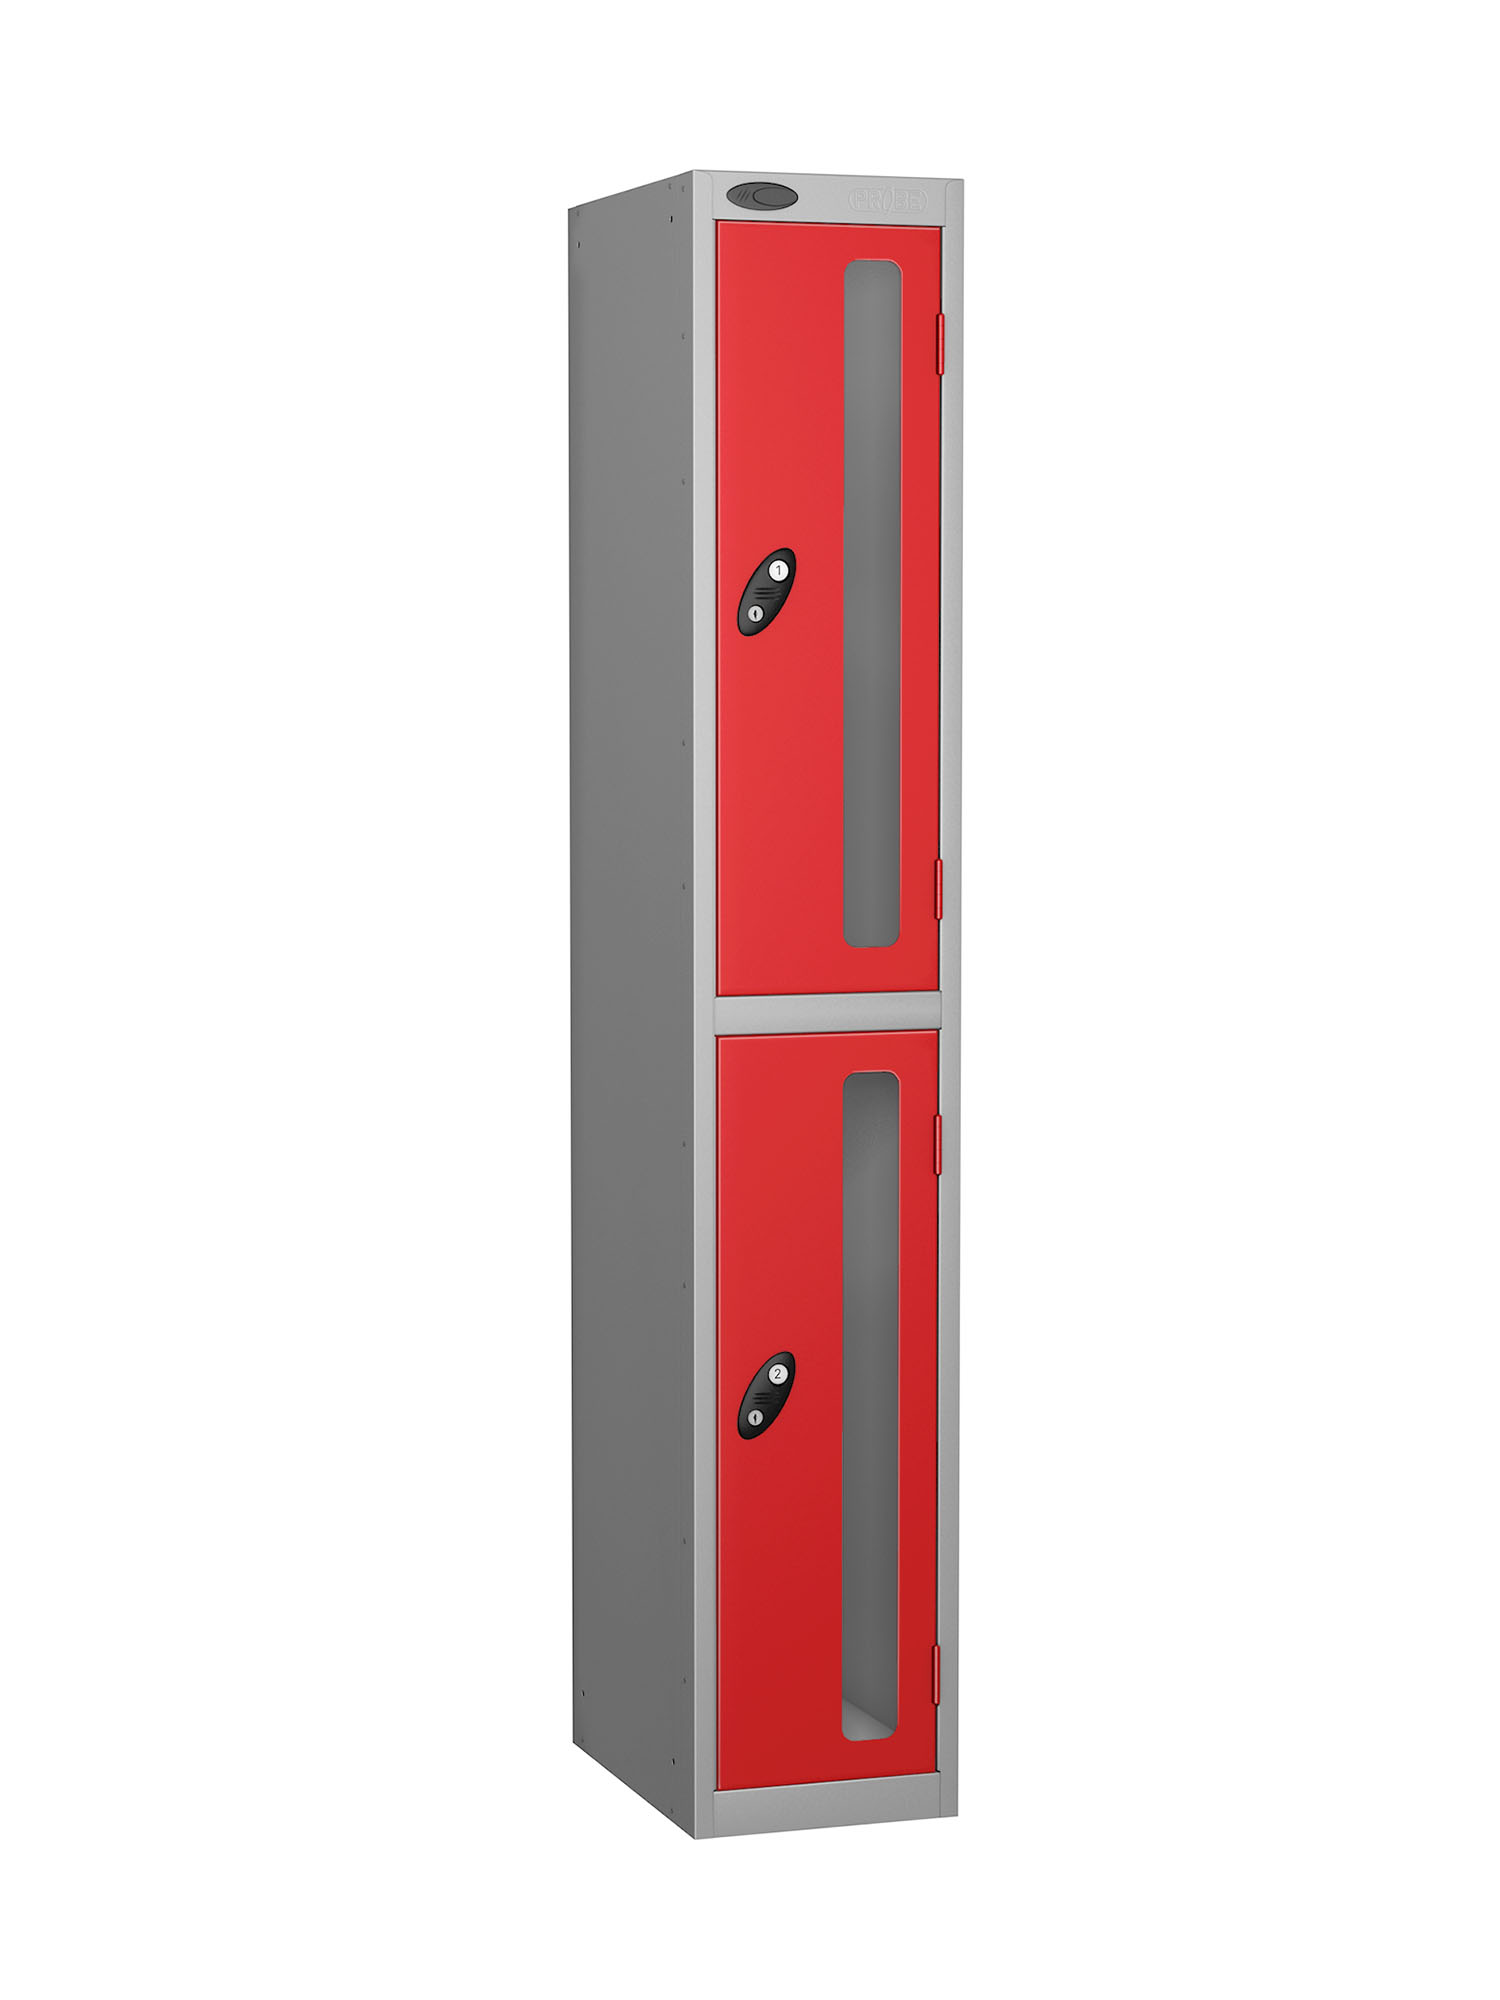 Probe 2 doors vision panel anti-stock theft locker red